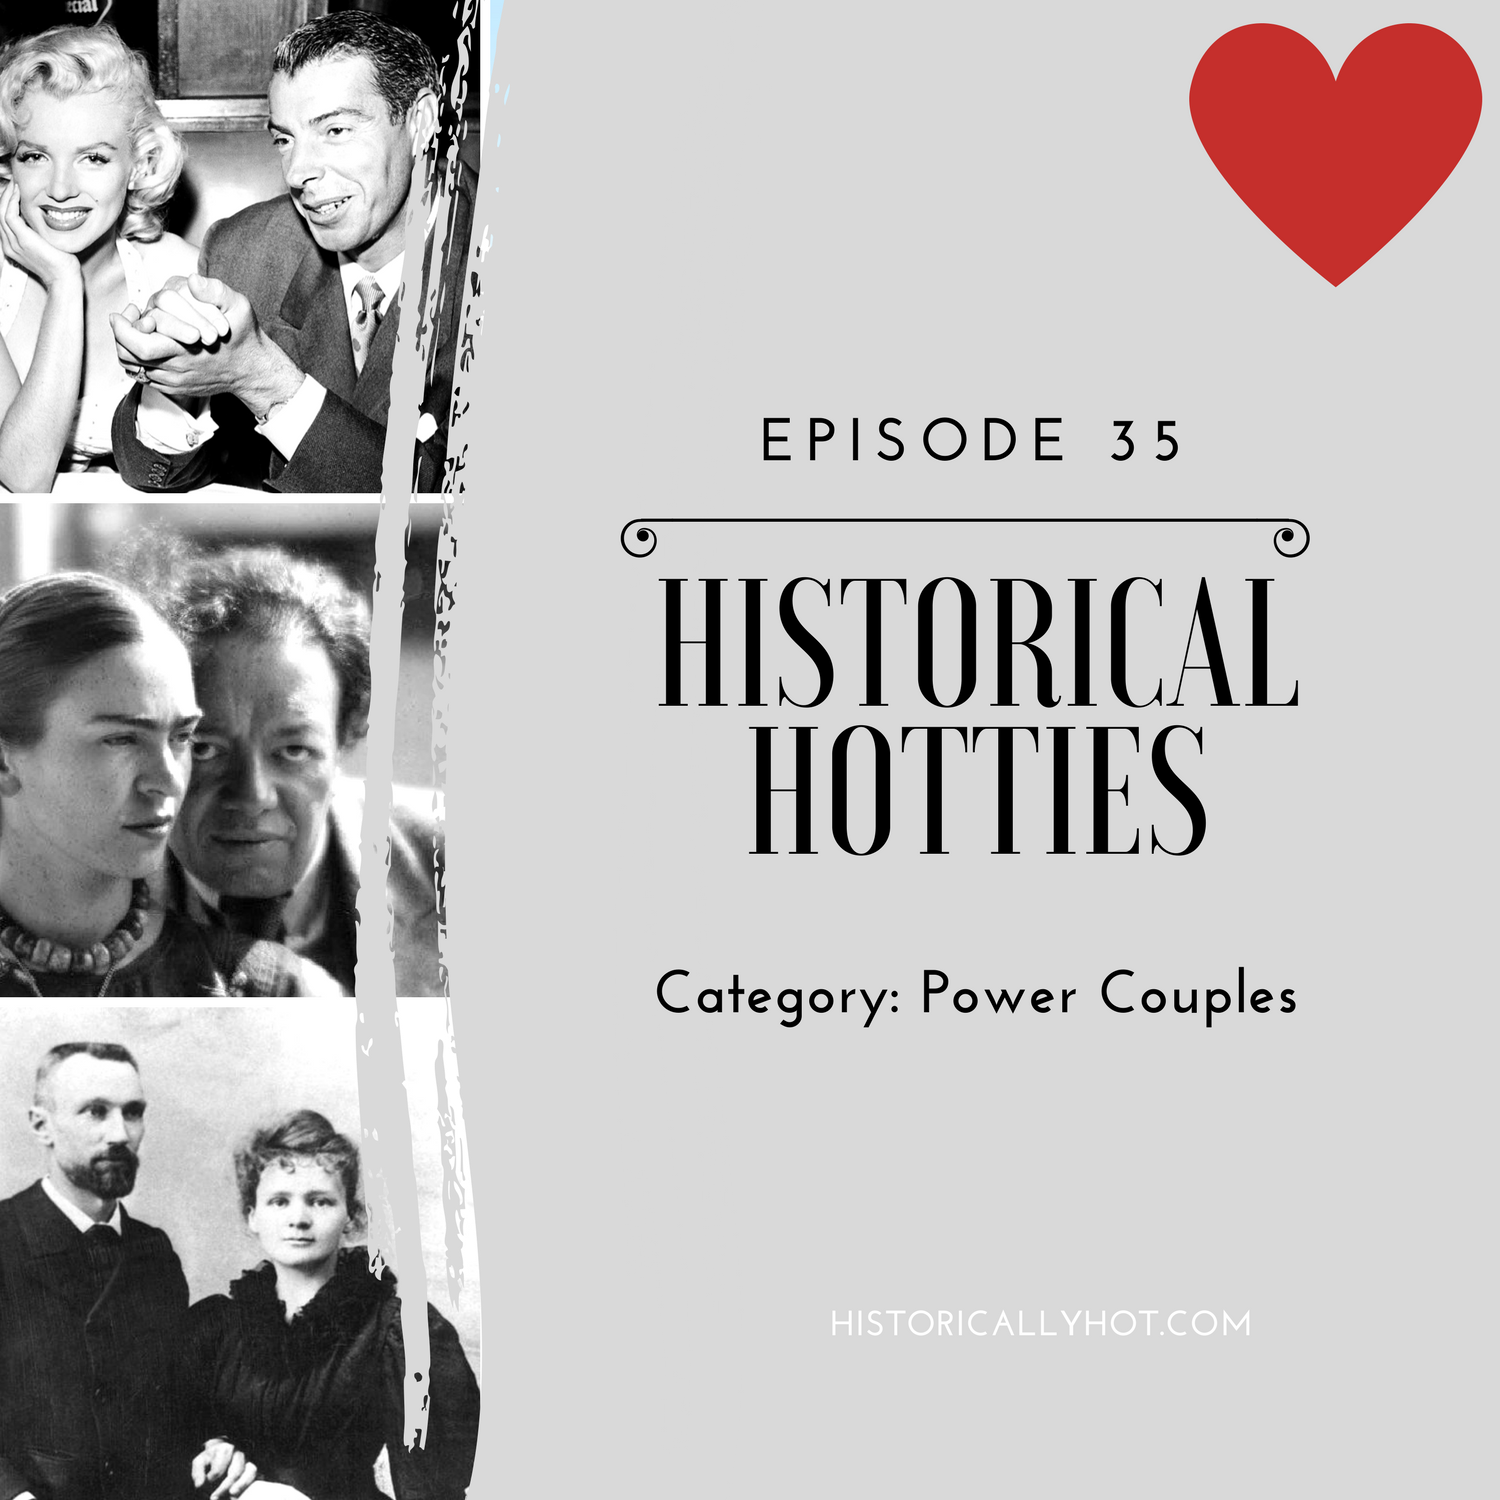 historical hotties power couples